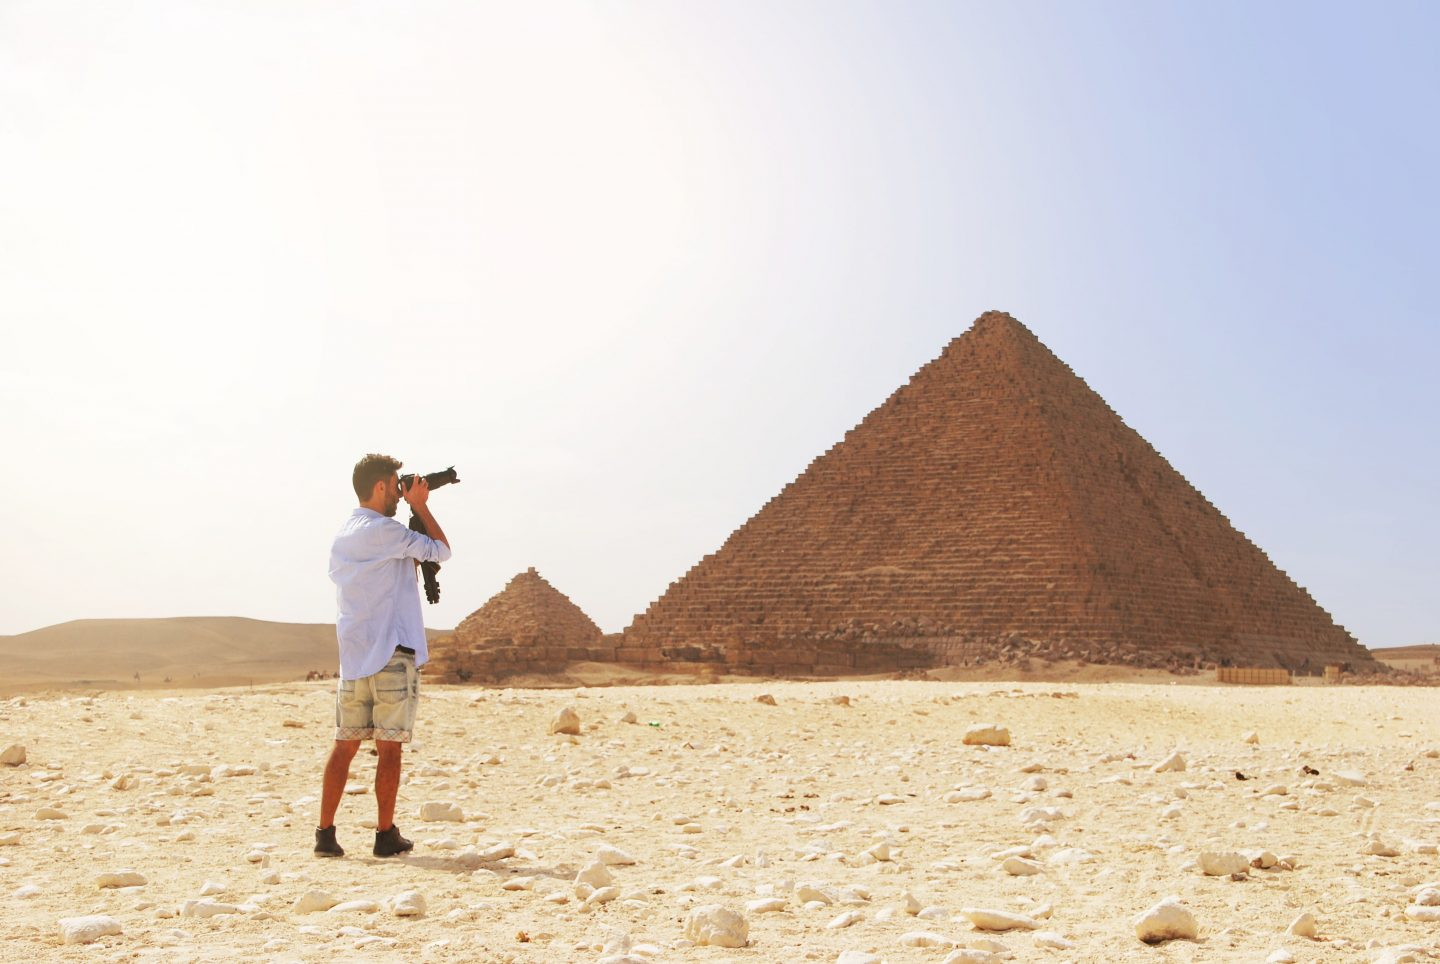 A man taking photograph of the pyramid of egypt. A must have egypt packing list